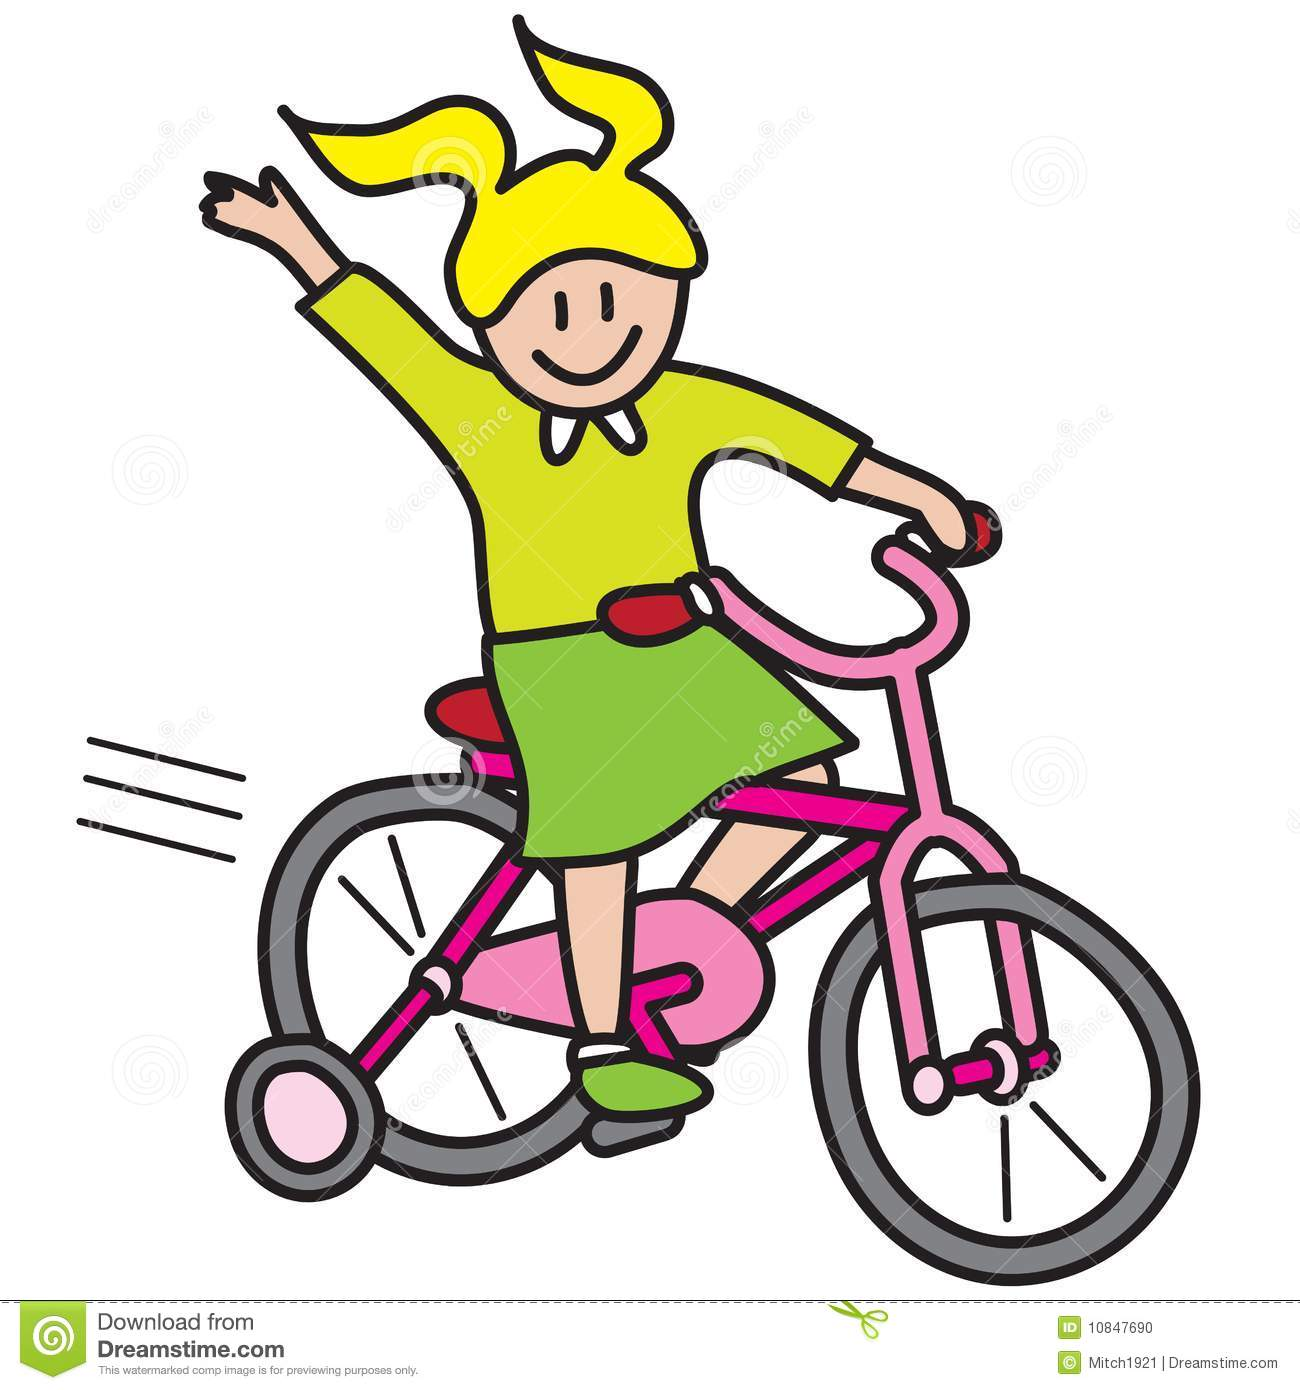 Guy riding bicycle and makes it to finish line clipart picture freeuse Bicycling Clipart | Free download best Bicycling Clipart on ... picture freeuse